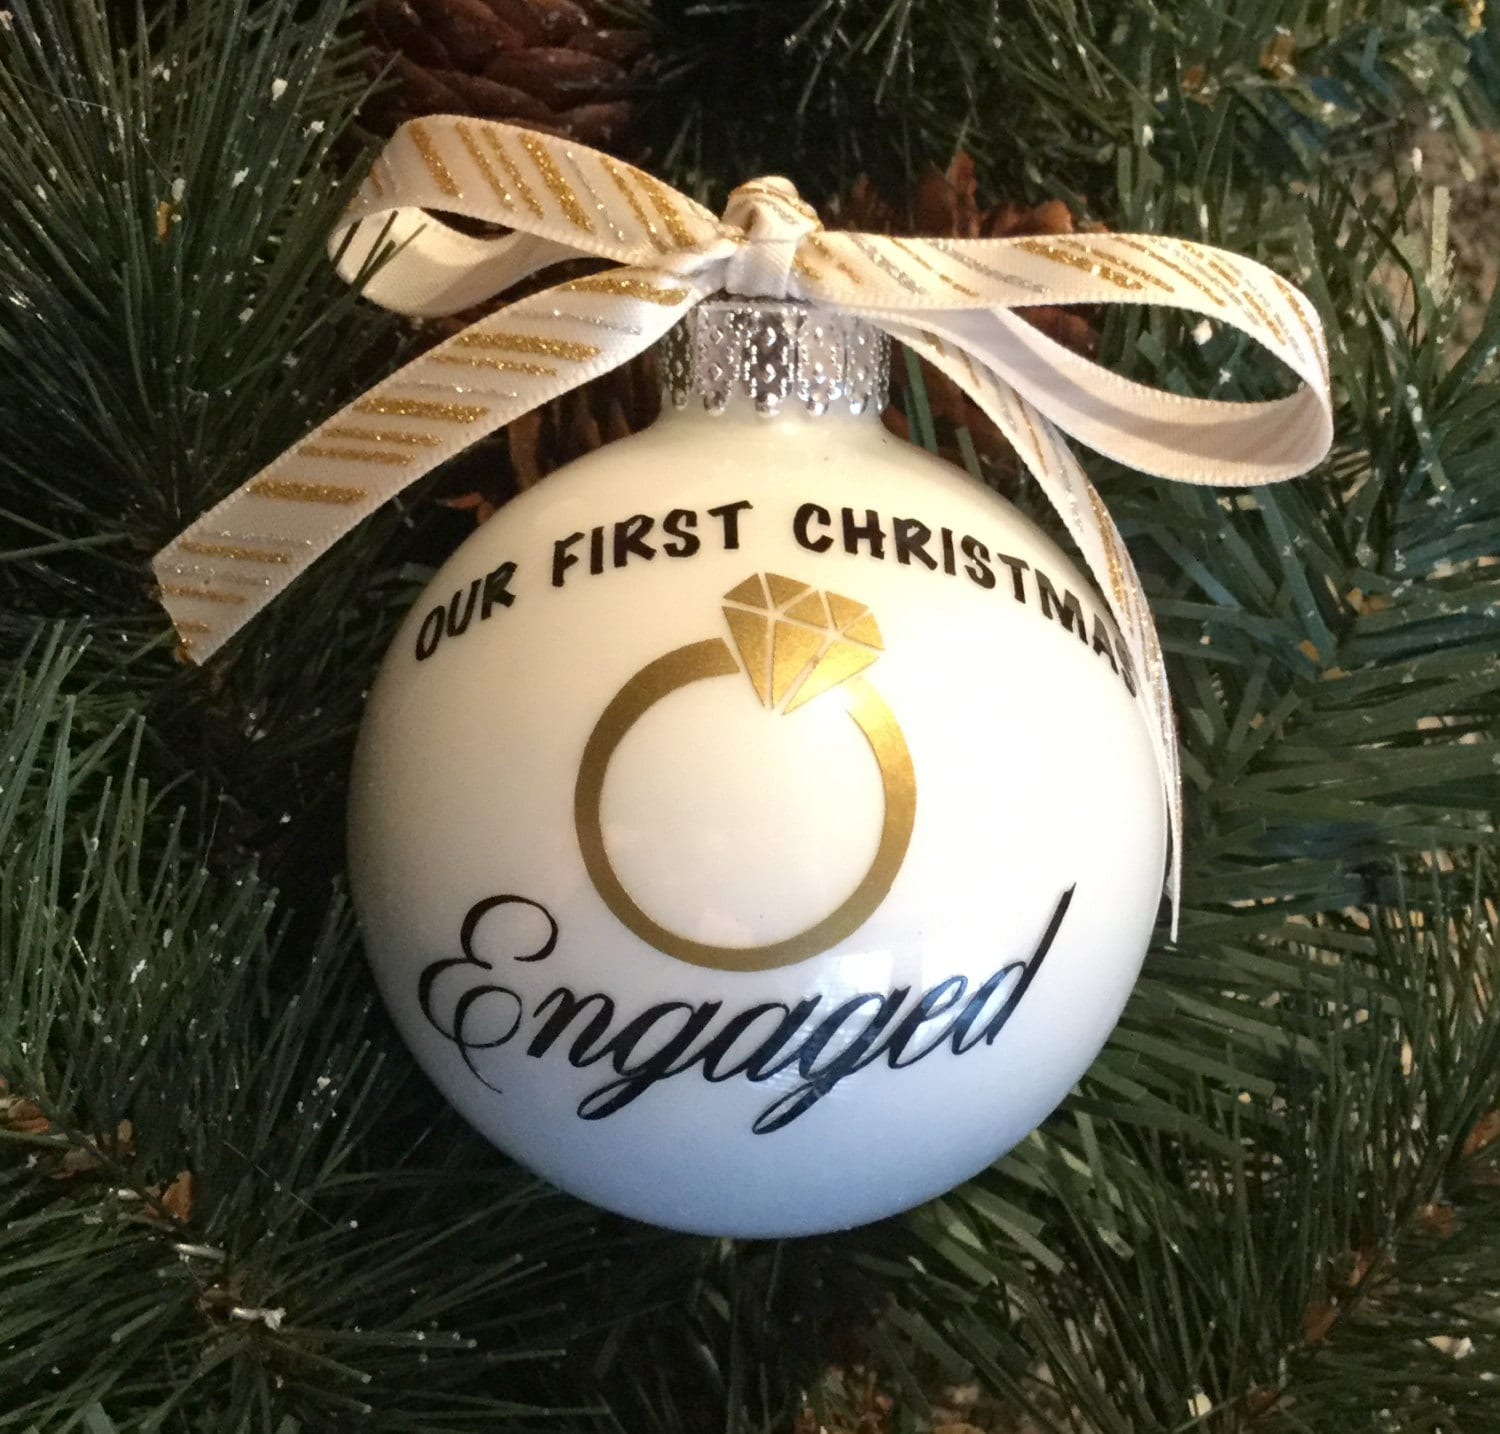 Our First Christmas Engaged Ornament - Engagement Ornament ...